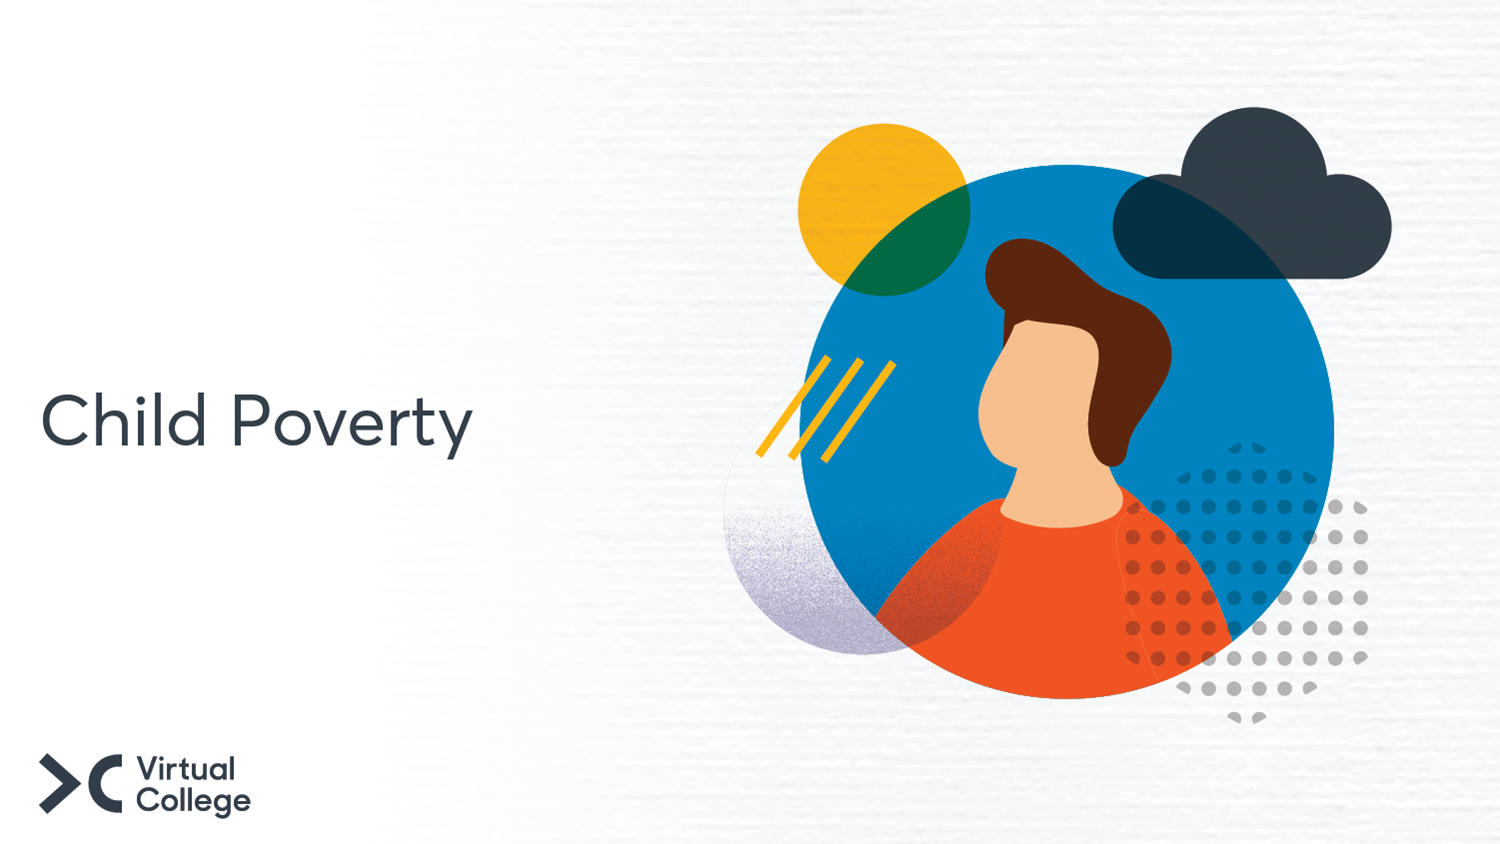 Child Poverty main page